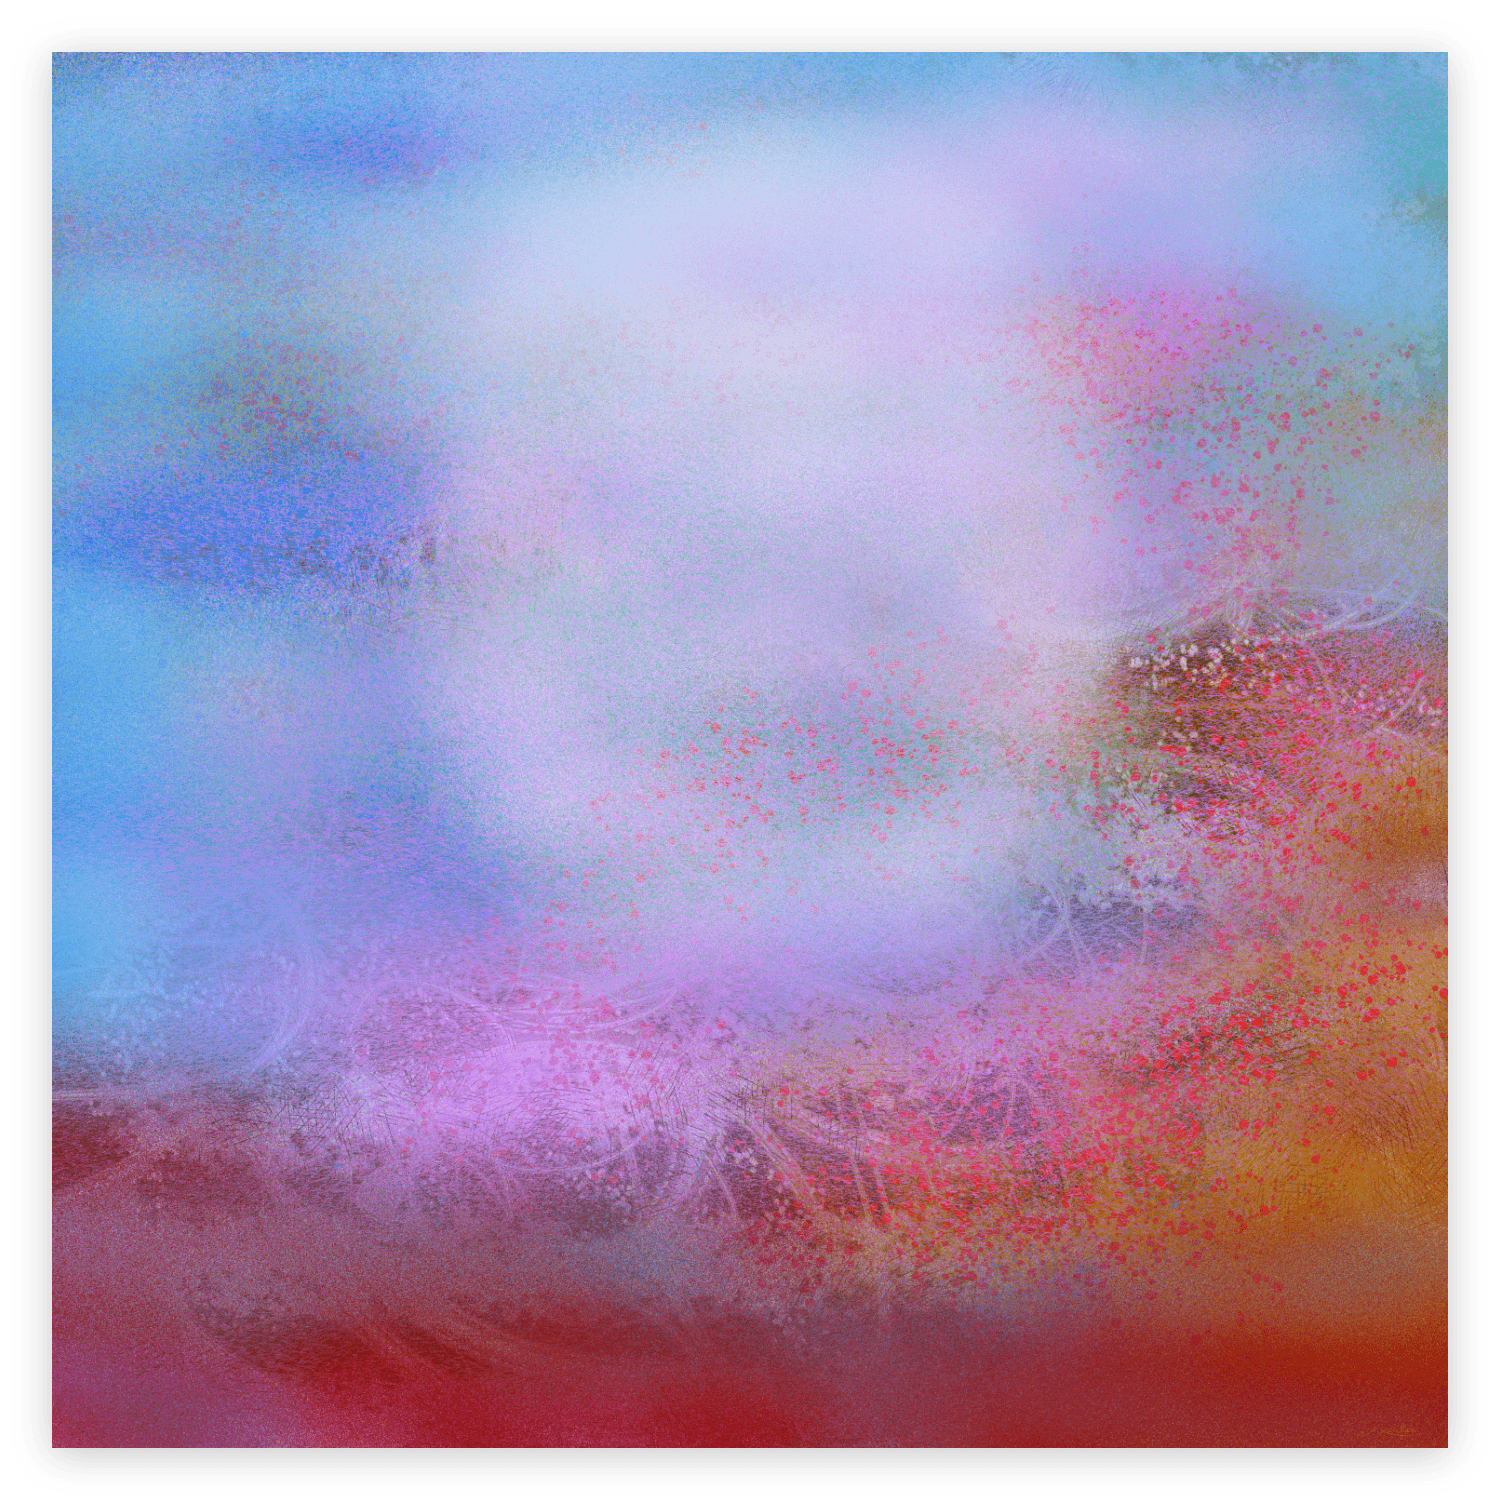 First image of 'A Morning'. Morning of tenderness, Morning tying heaven to earth, Slowly, In the awakening breath. artist: Anne Turlais - Limited edition of 300. Abstract wall decor printed on Dibond. Signed and numbered